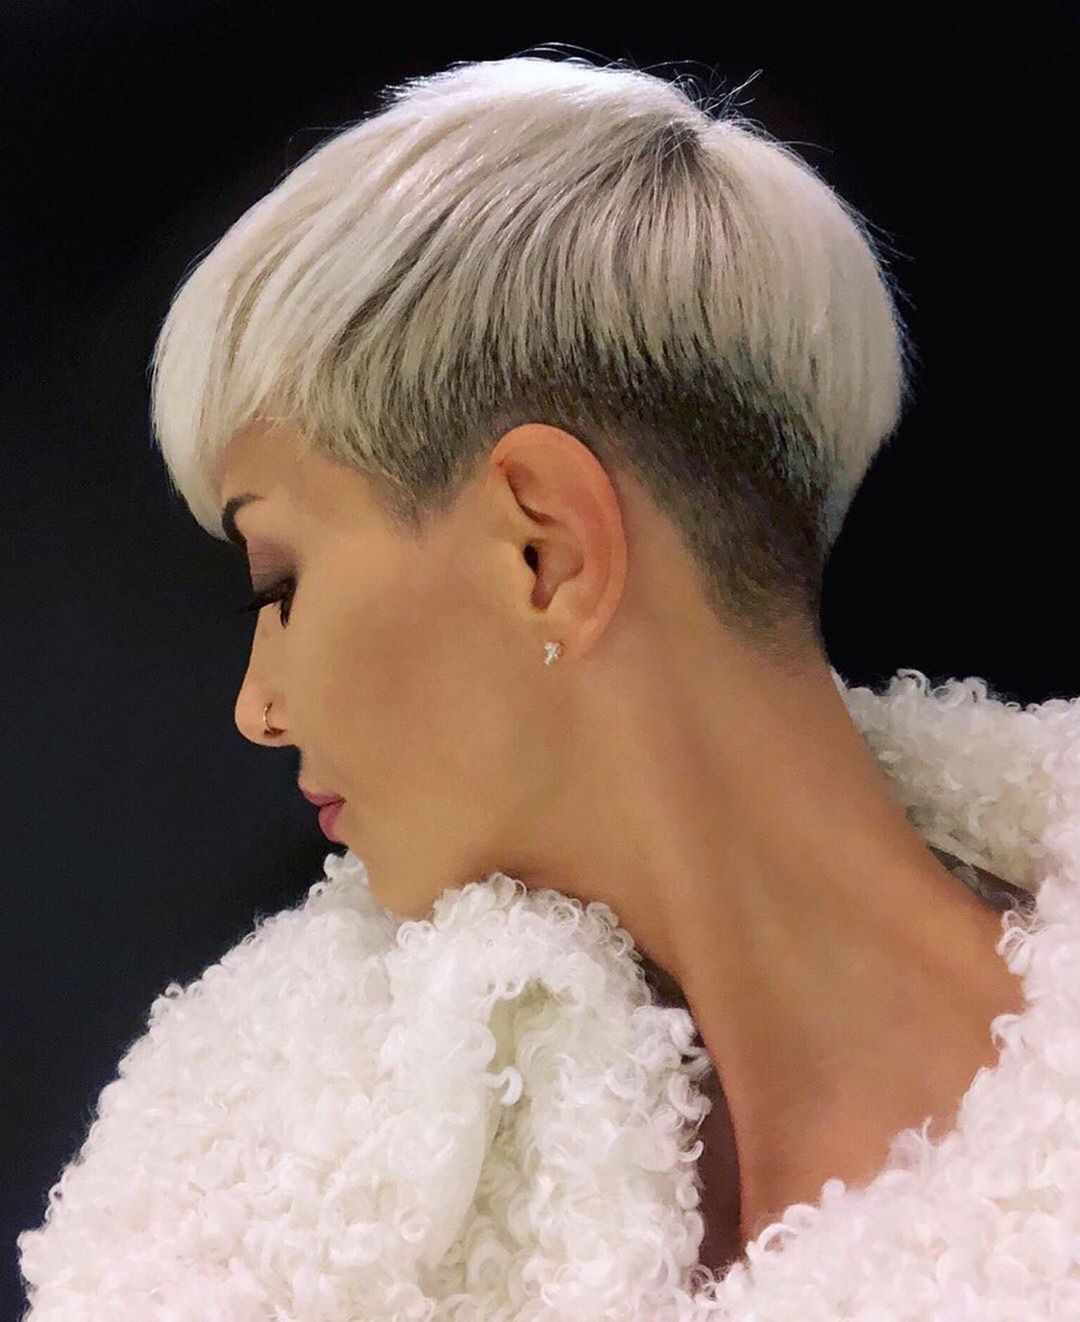 40+ New Modern Hair Color – Pixie And Bob Short Haircuts For 2019 #pixiehairstyles